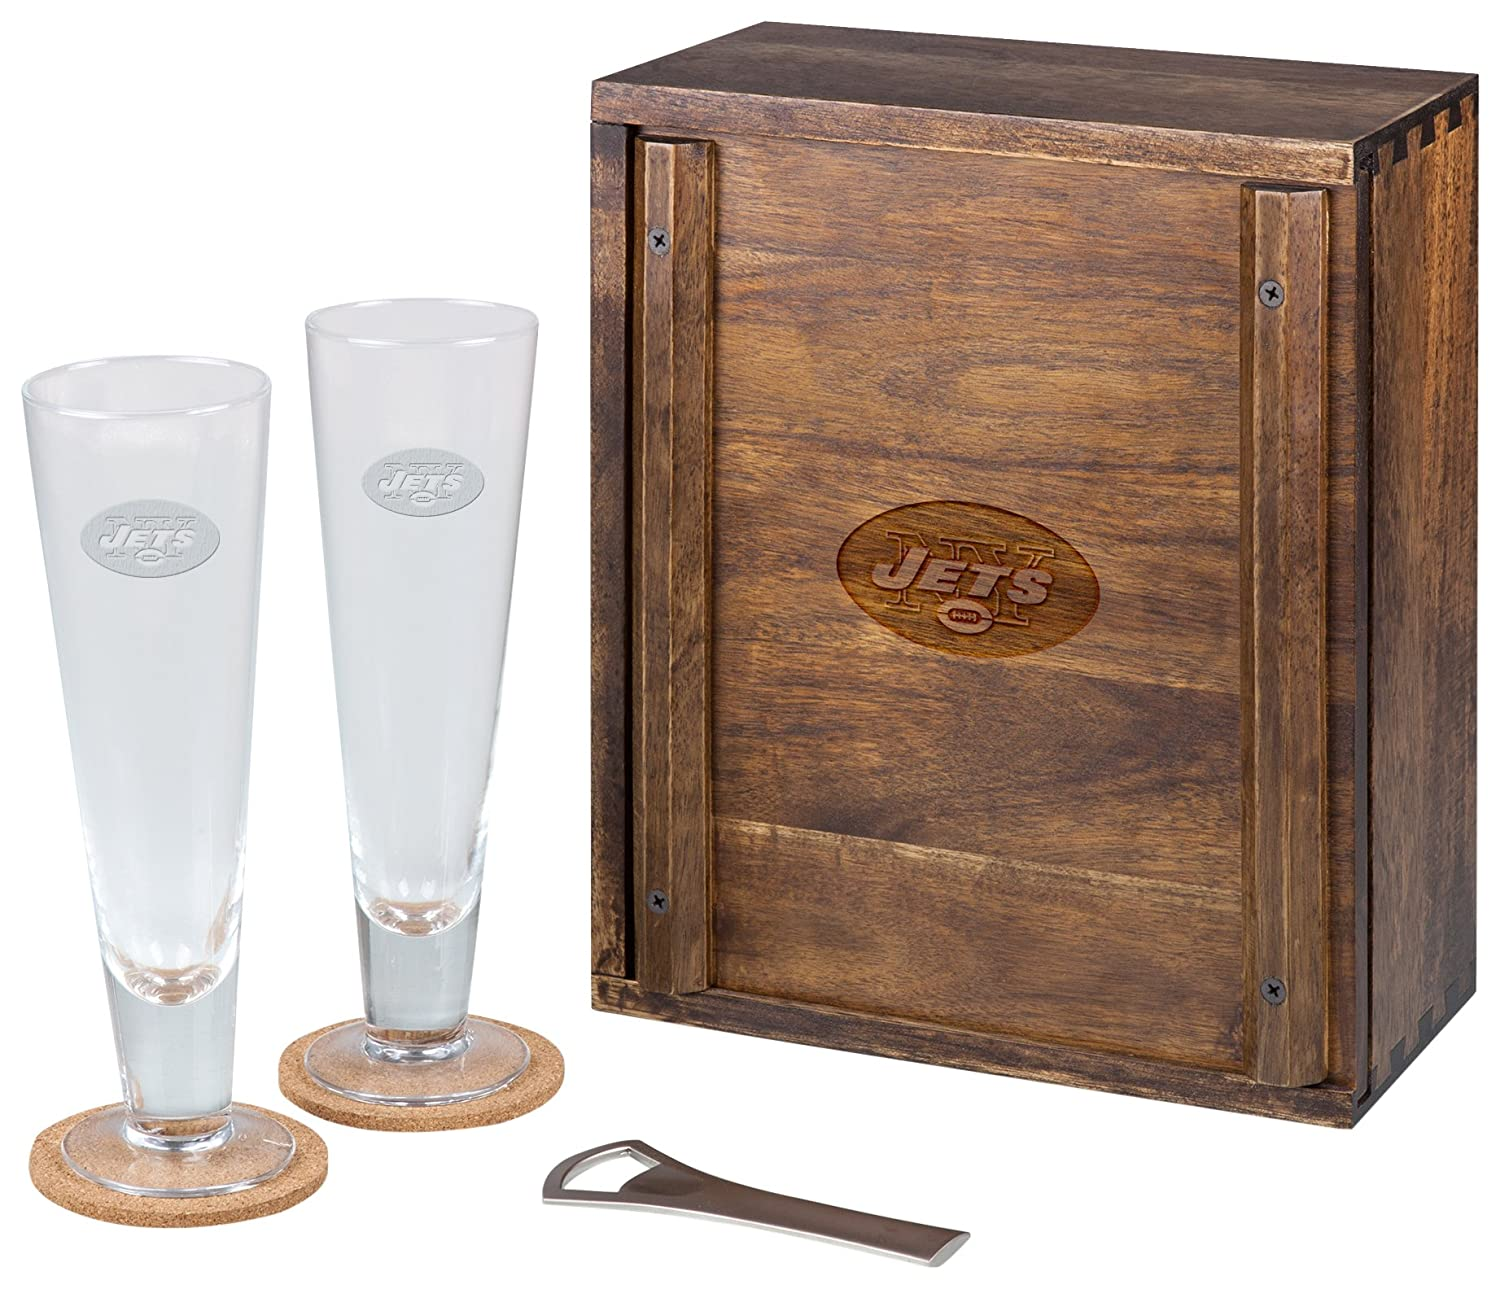 NFL Acacia Wood Pilsner Beer Glass Gift Set for Two Picnic Time 602-06-512-023-2